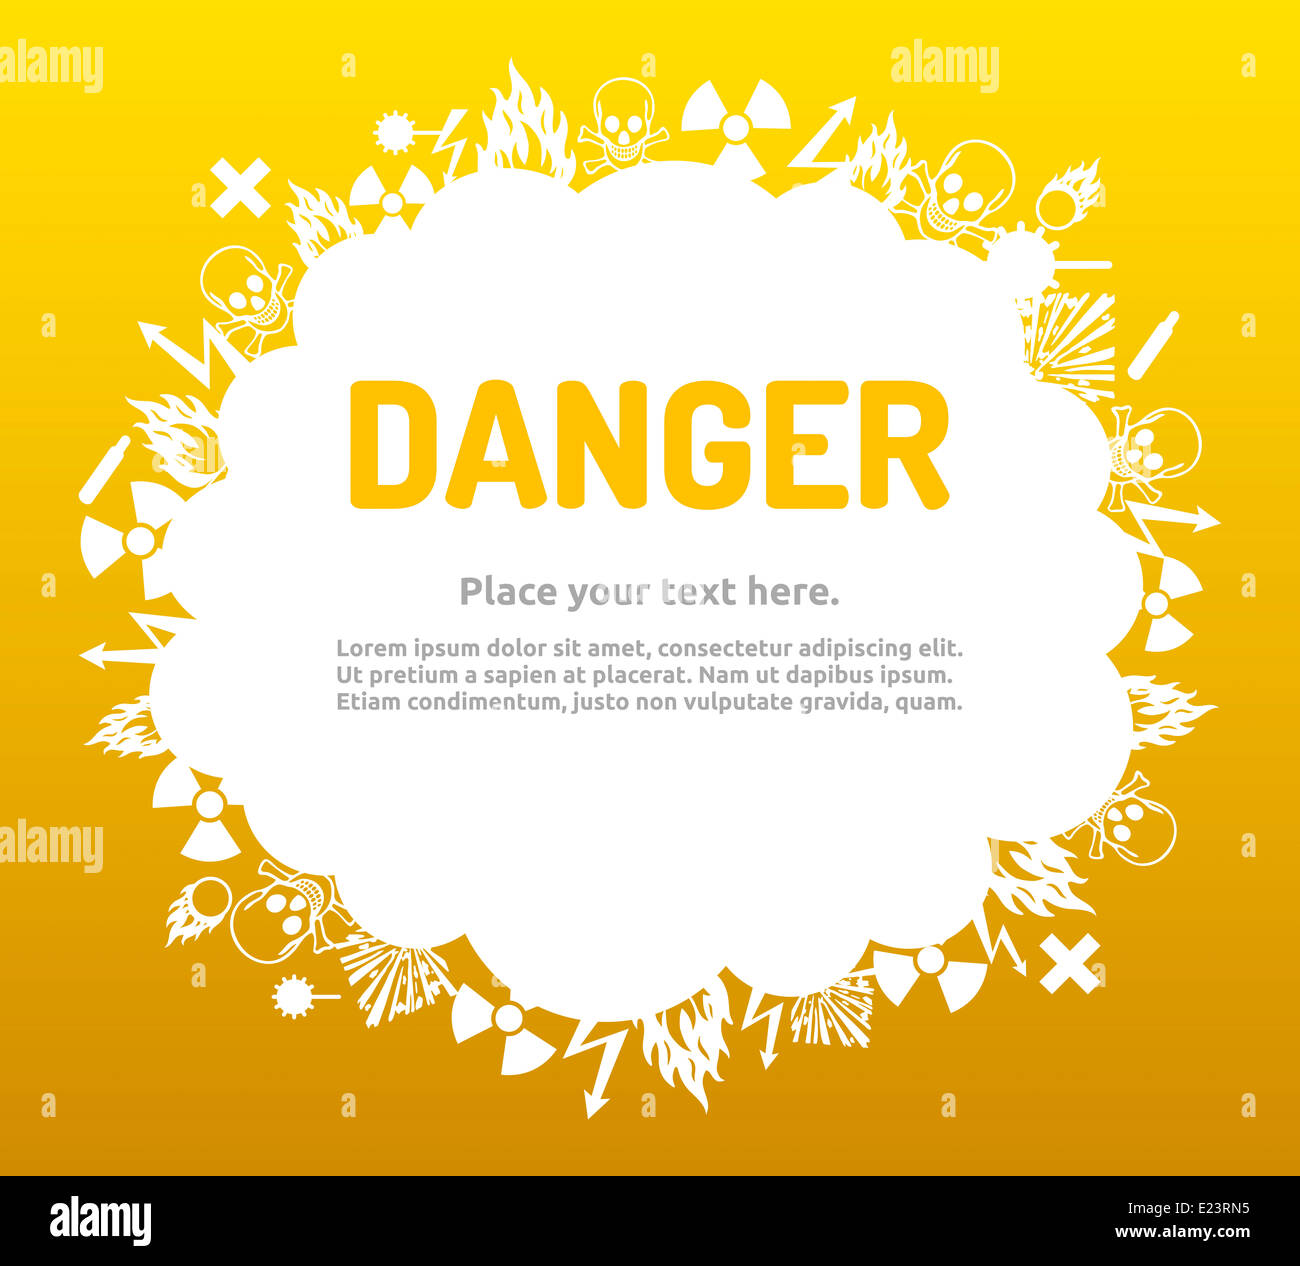 Danger sign set in cloud banner for your text. Hazard symbol template. Stock Photo